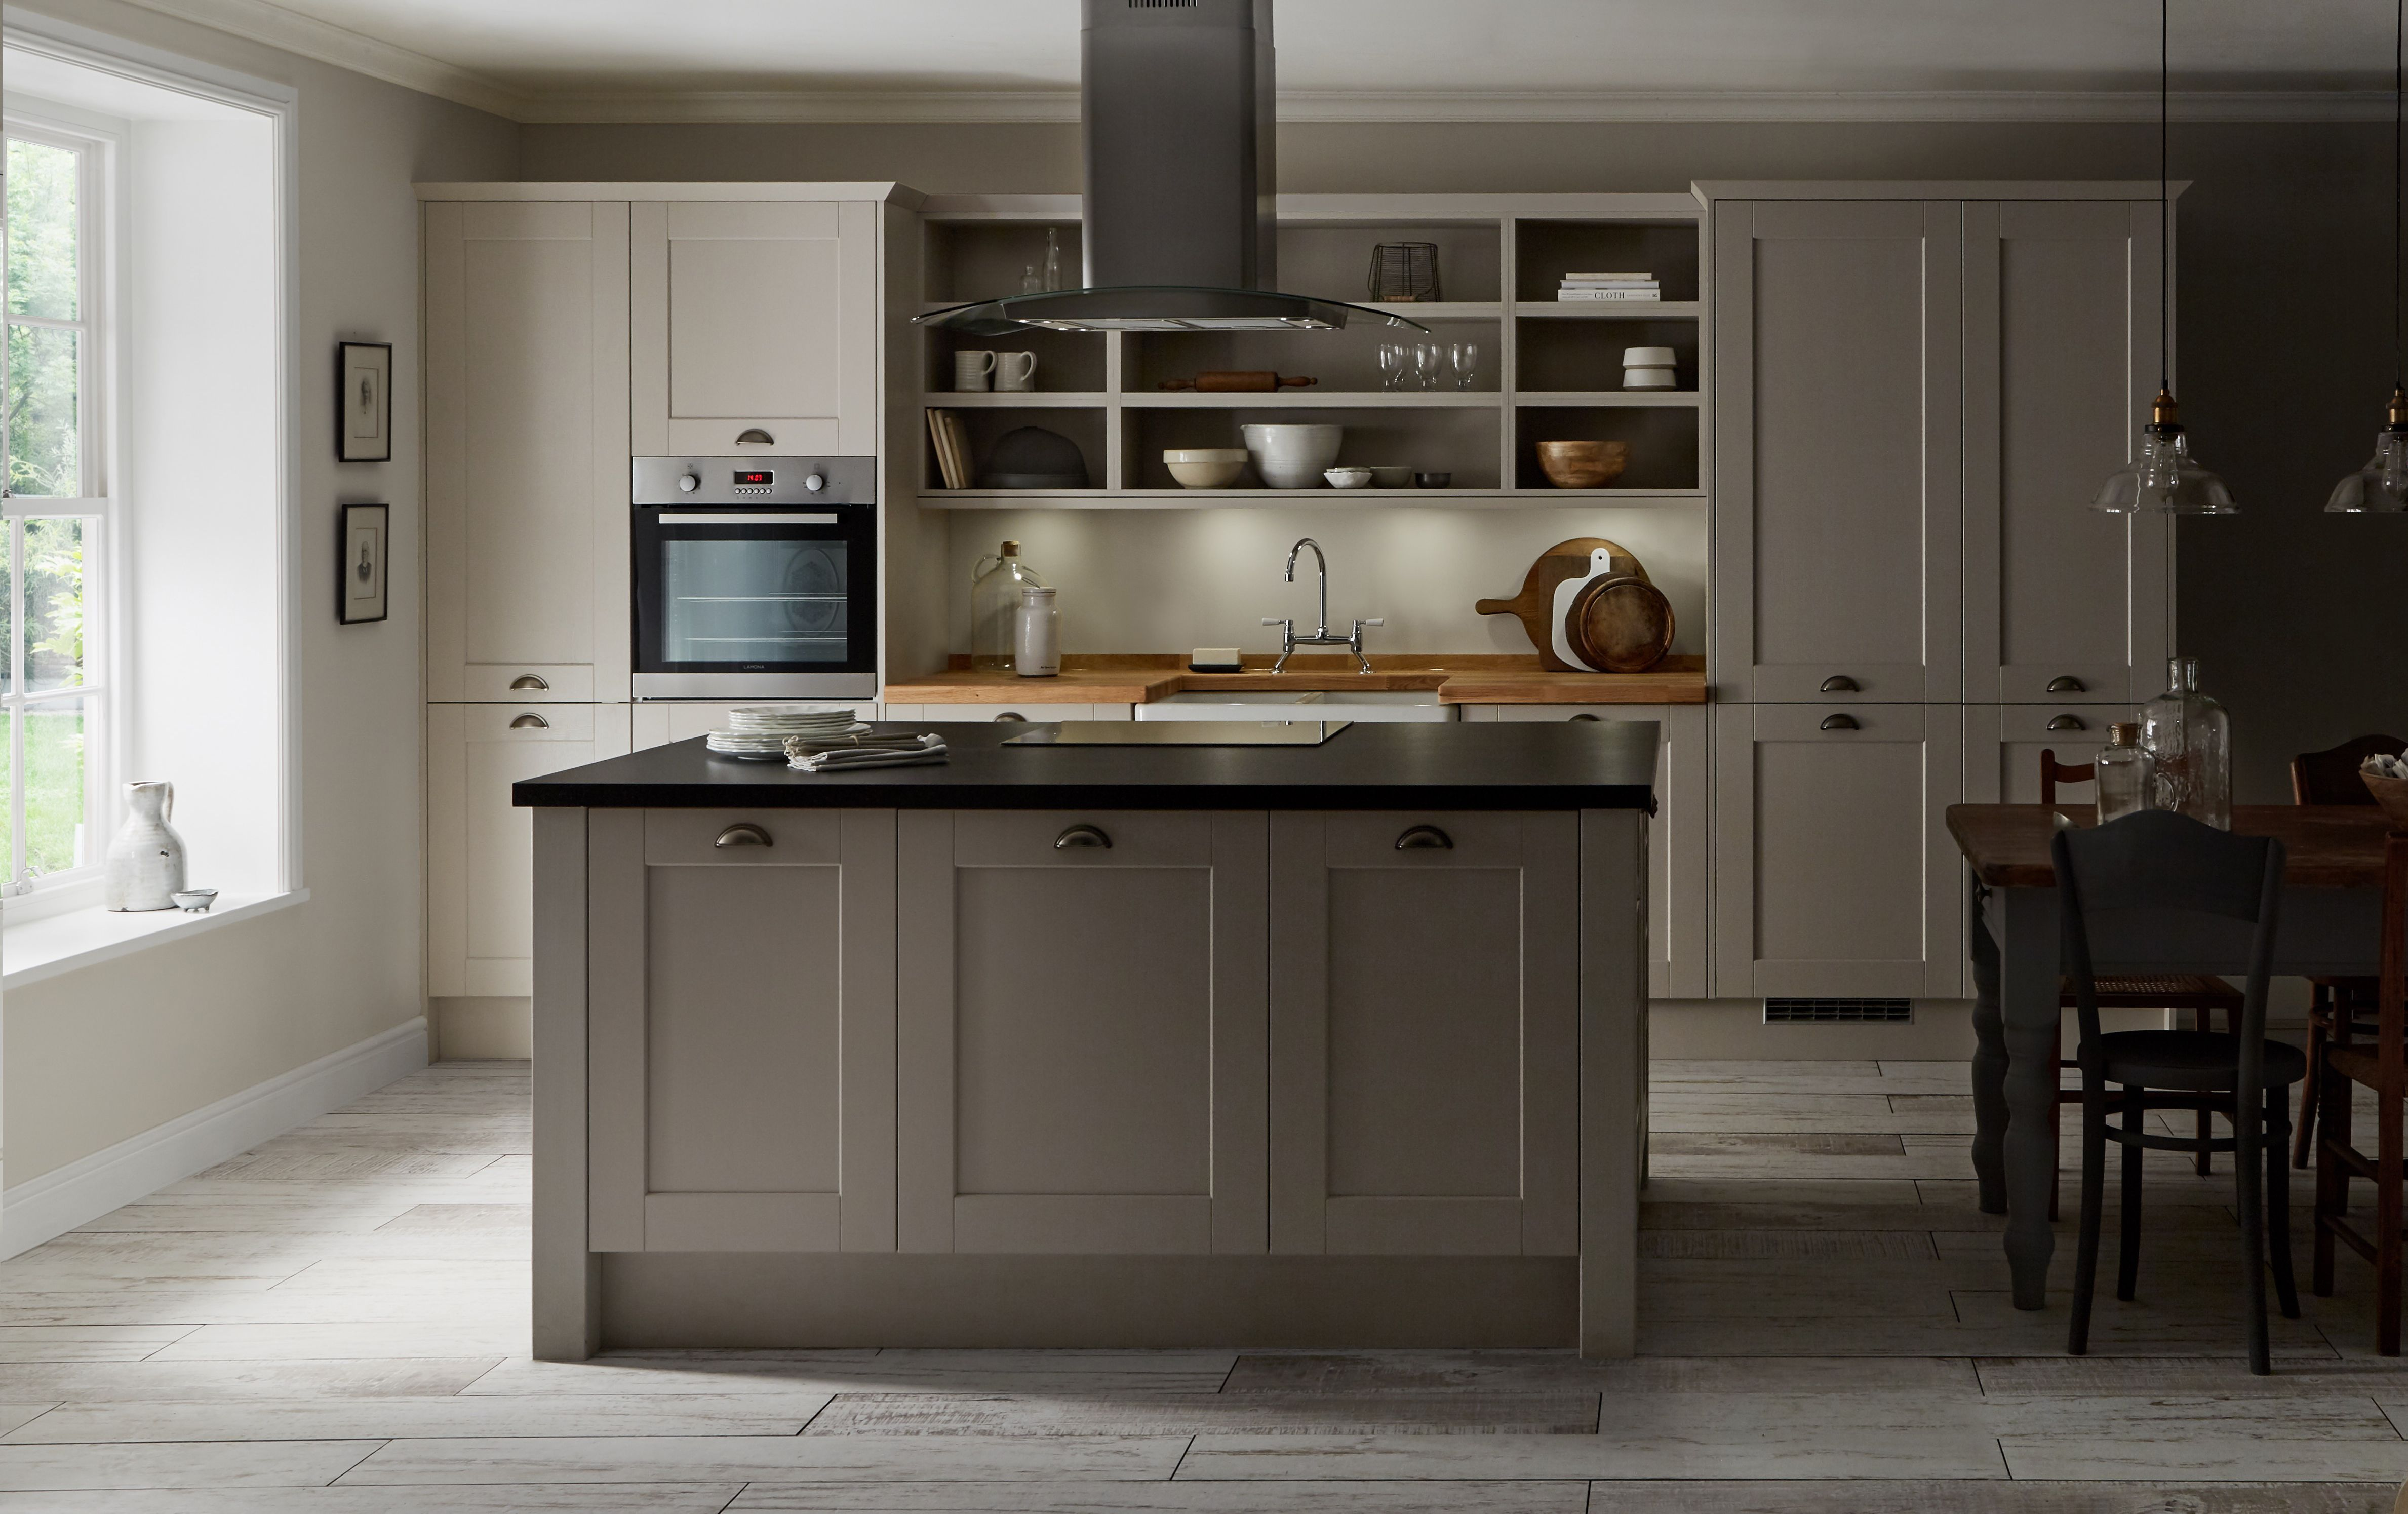 Burford Grained Stone Kitchen from The Shaker Collection